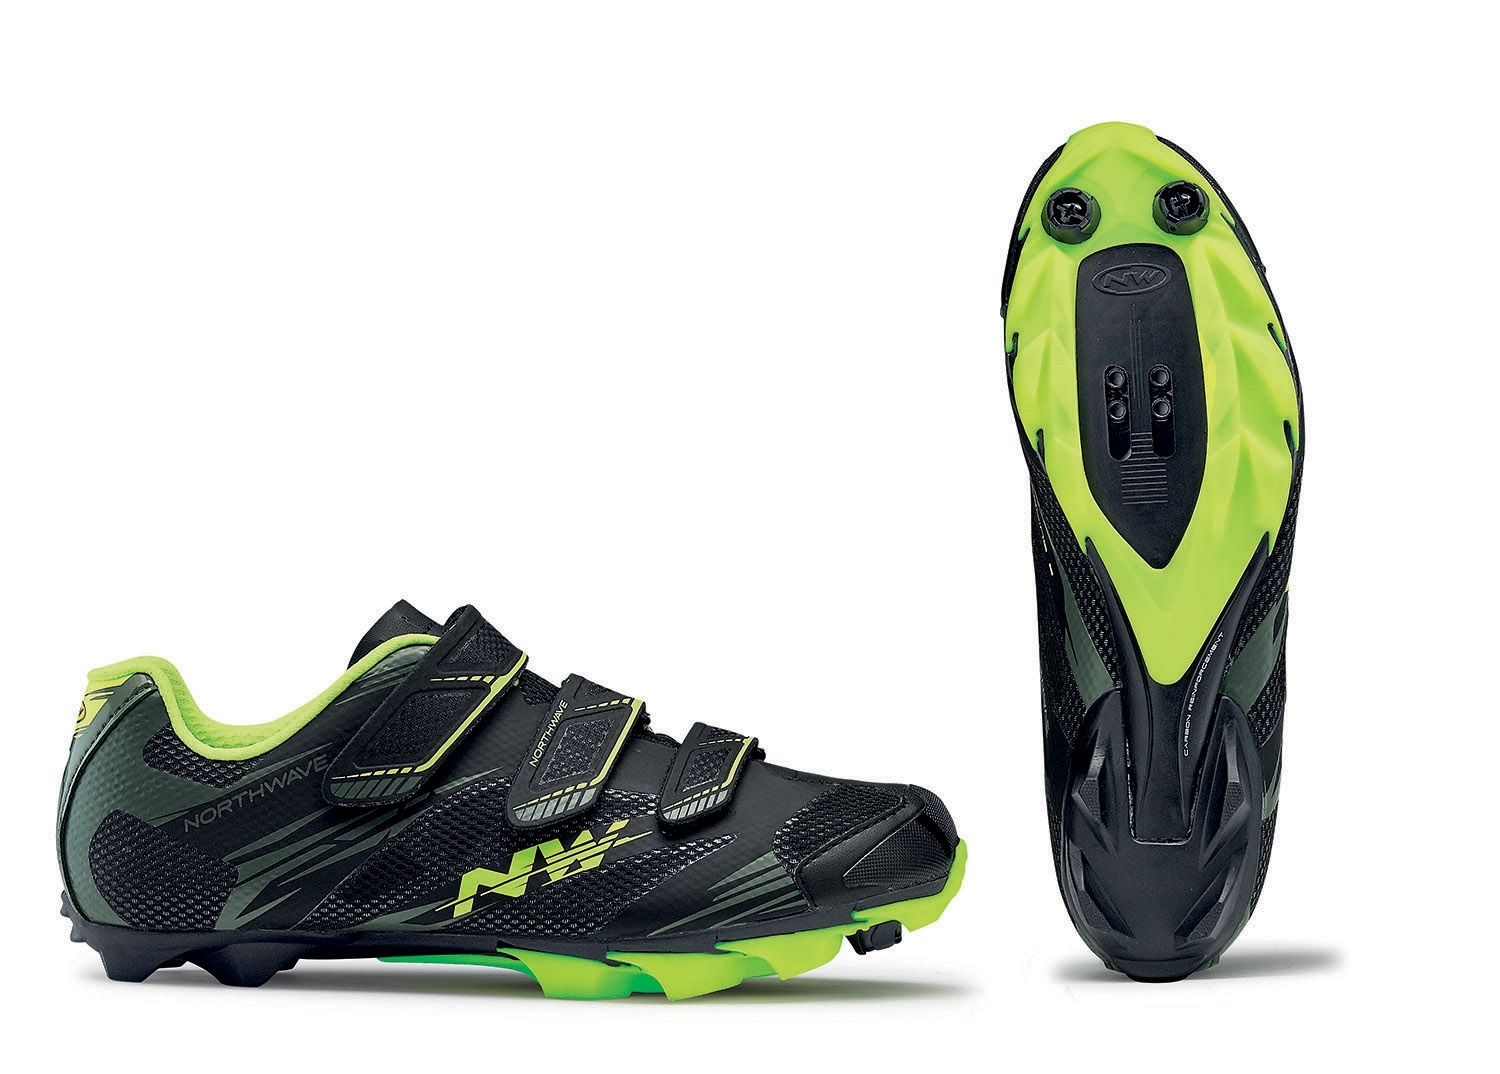 Best price Northwave Man MTB XC shoes SCORPIUS 2